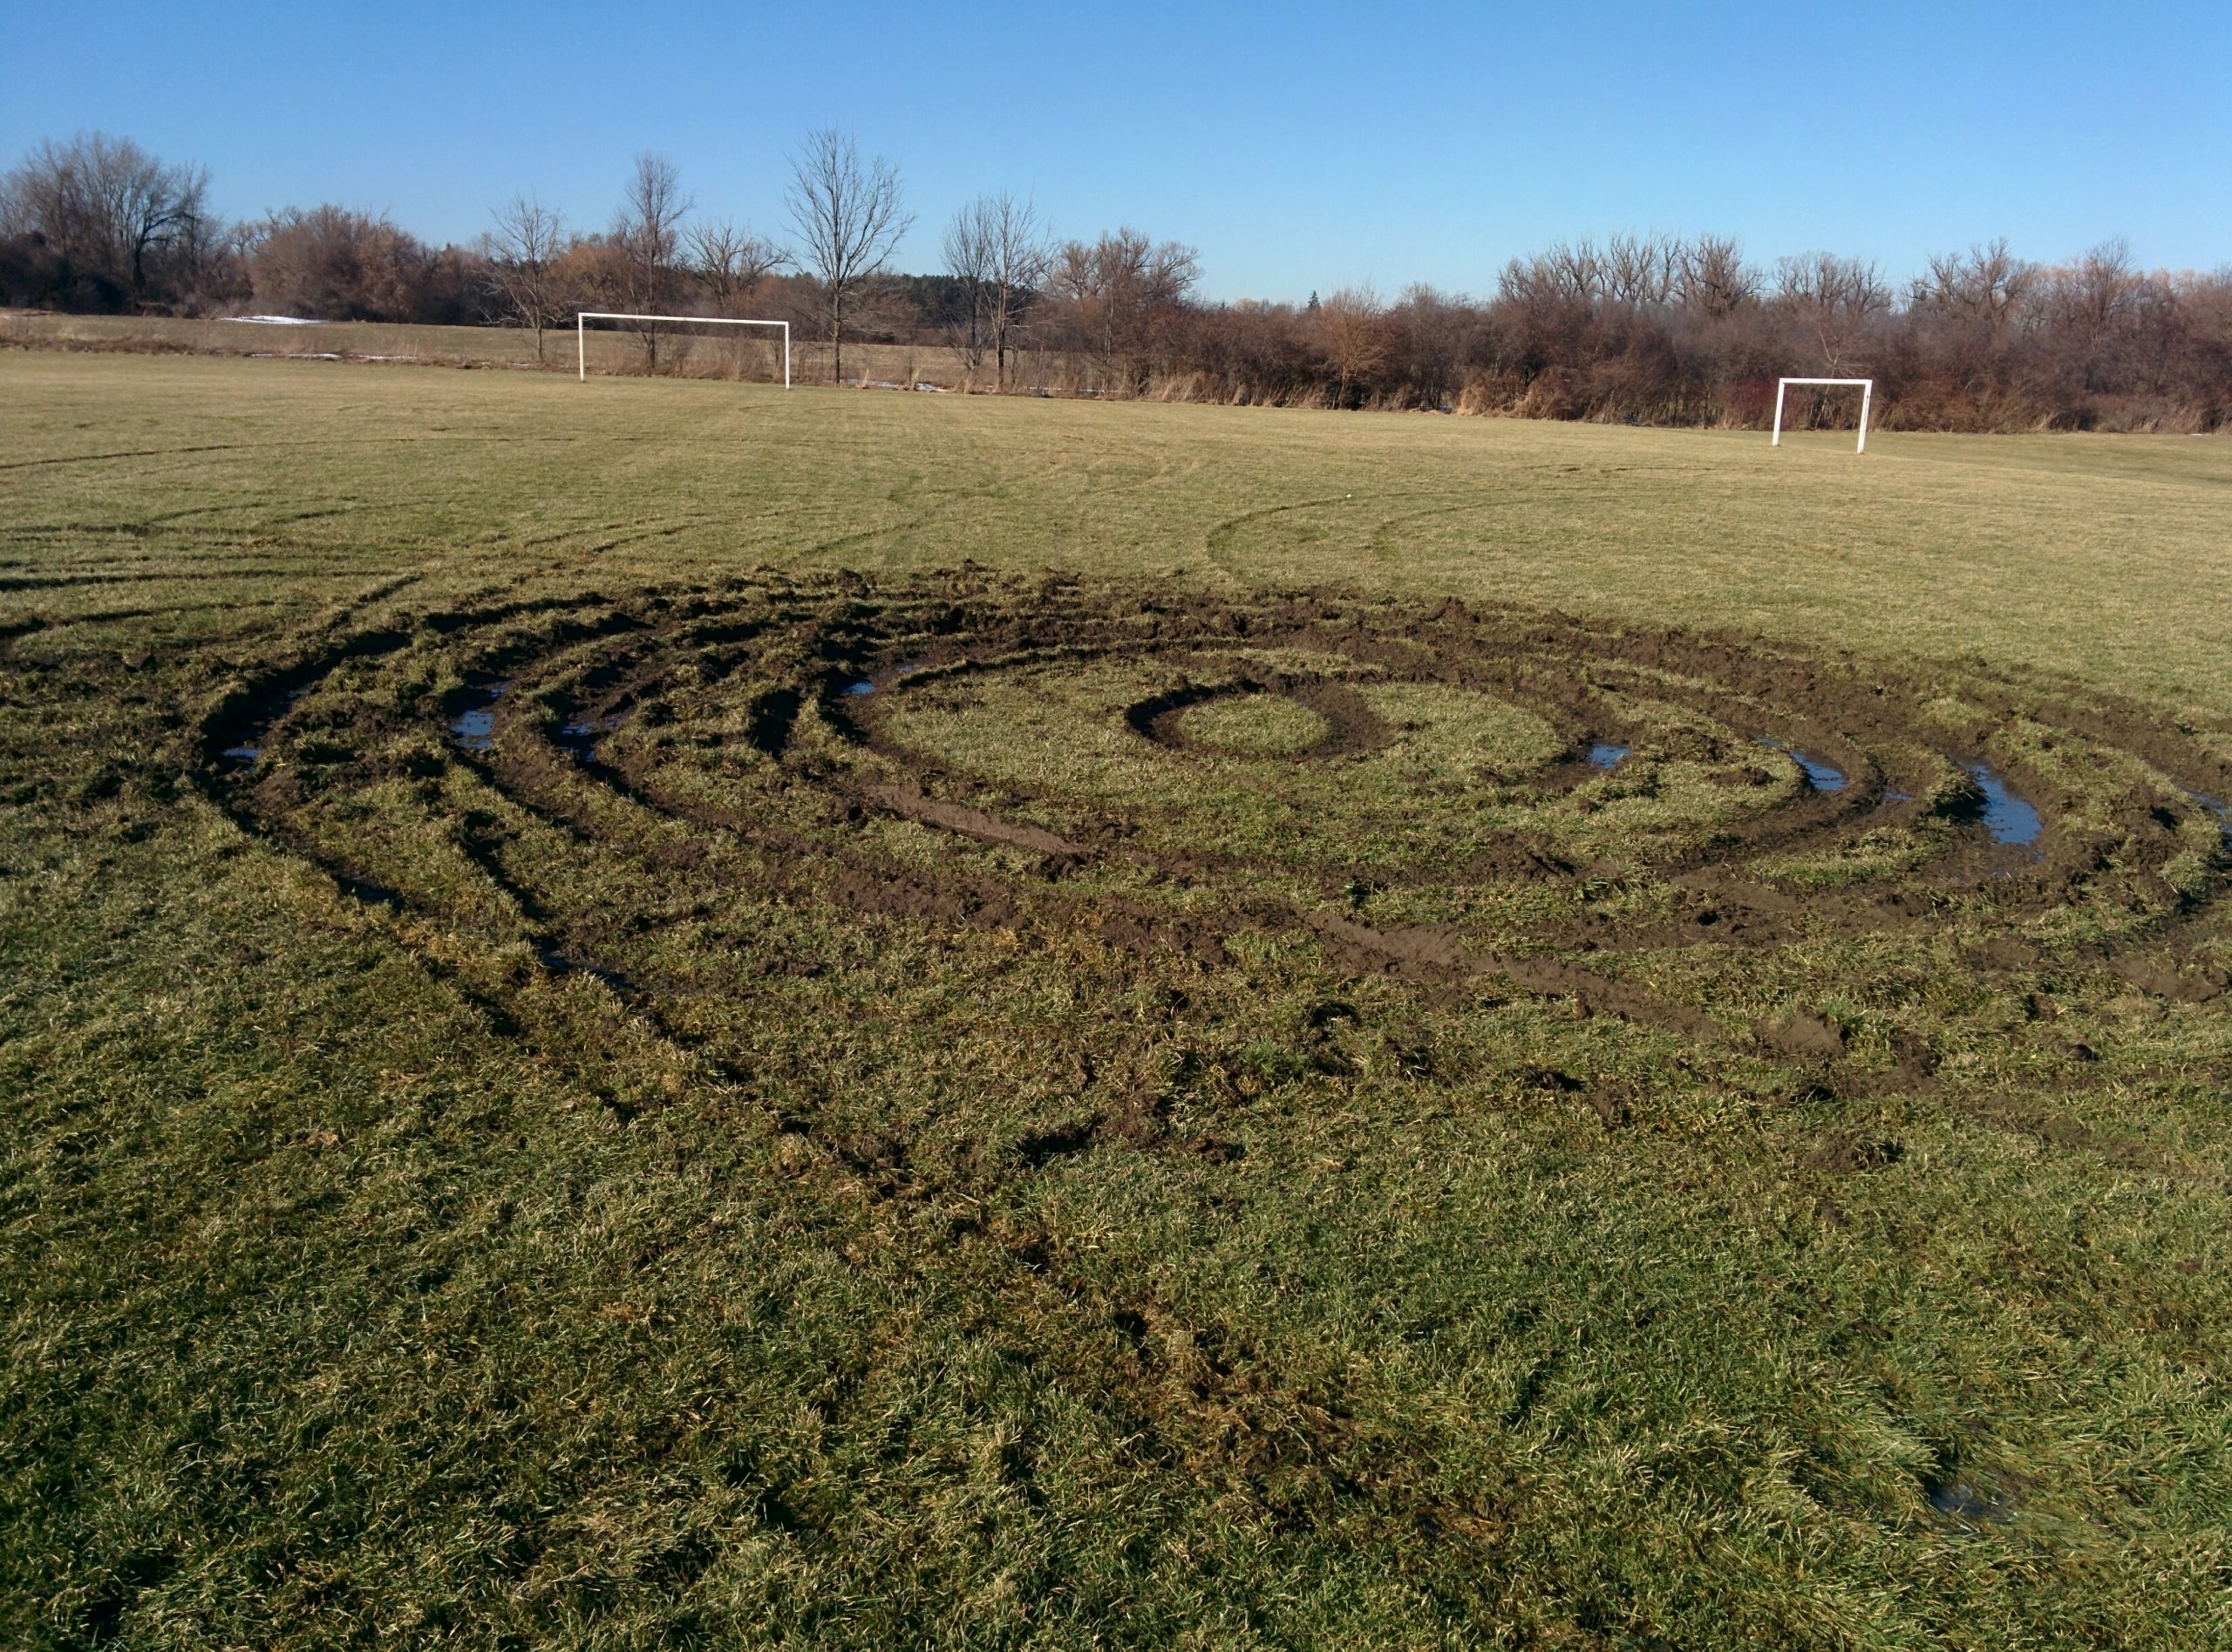 Repairs to soccer field means no sidelines for teams